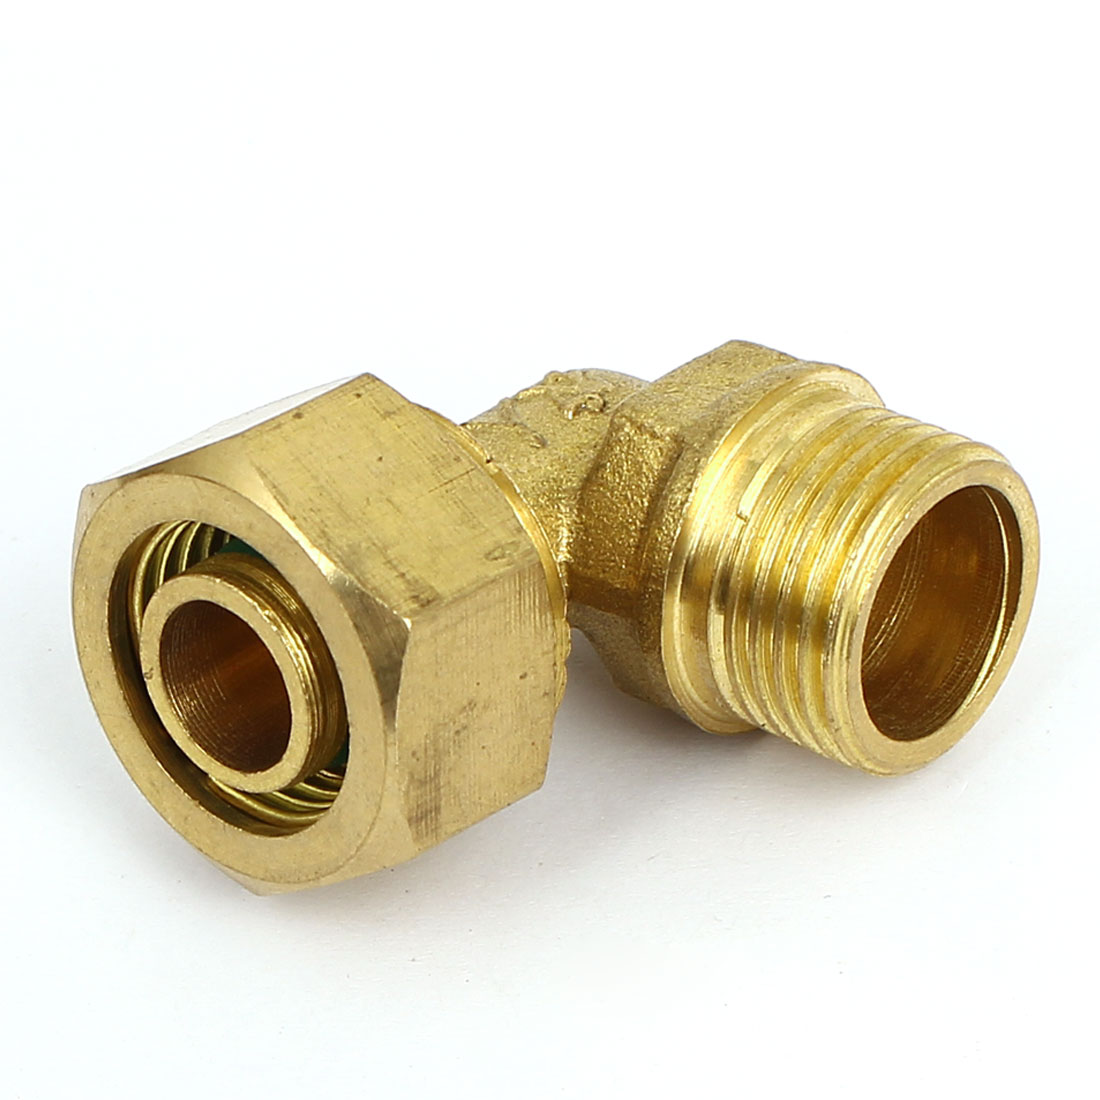 1/2 BSP 90 Degree Male Elbow Pipe Coupler Connector Brass Tone